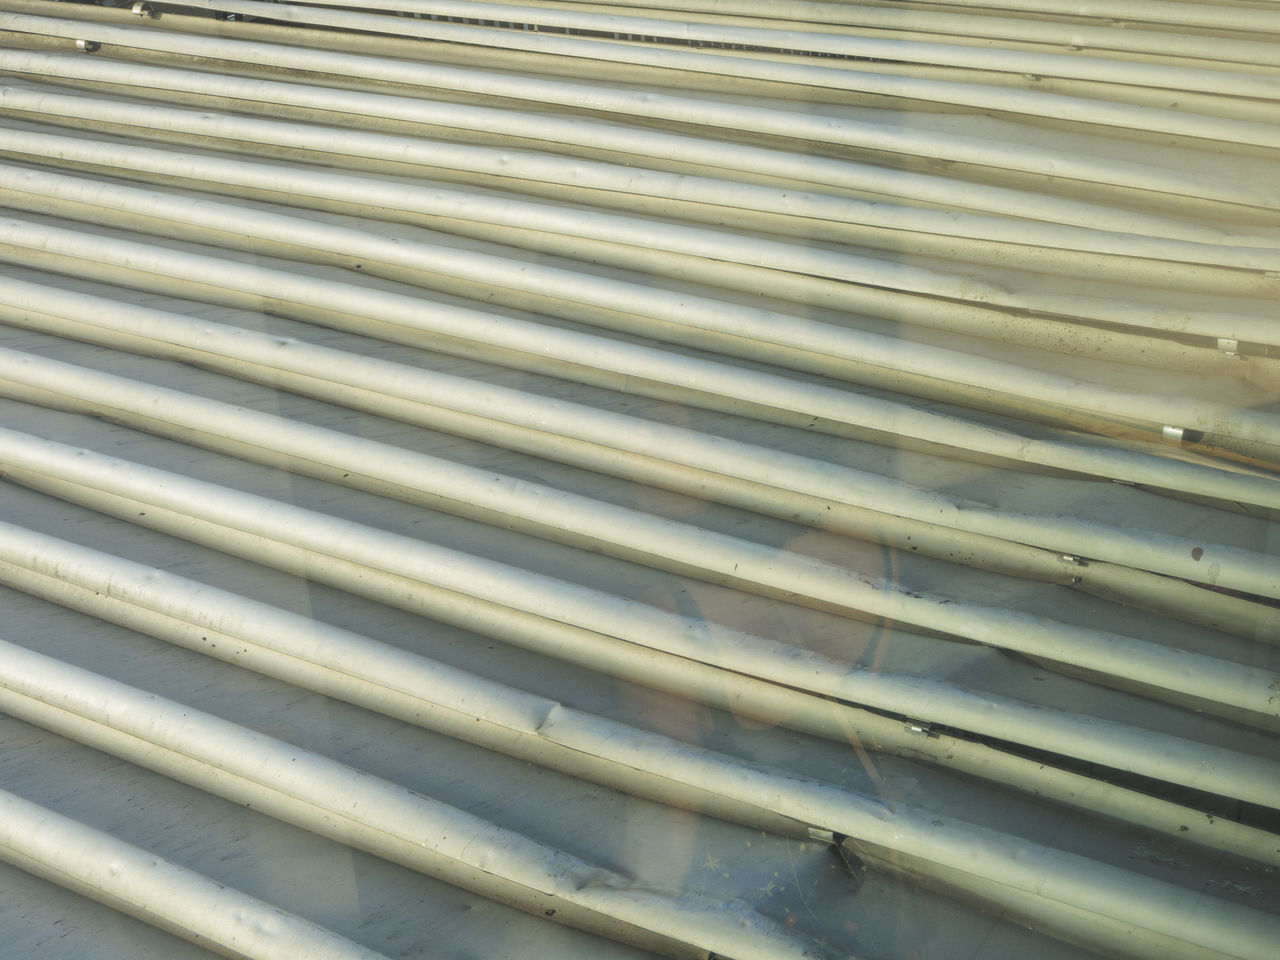 metal, corrugated iron, pattern, shutter, close-up, textured, backgrounds, outdoors, blinds, day, no people, steel